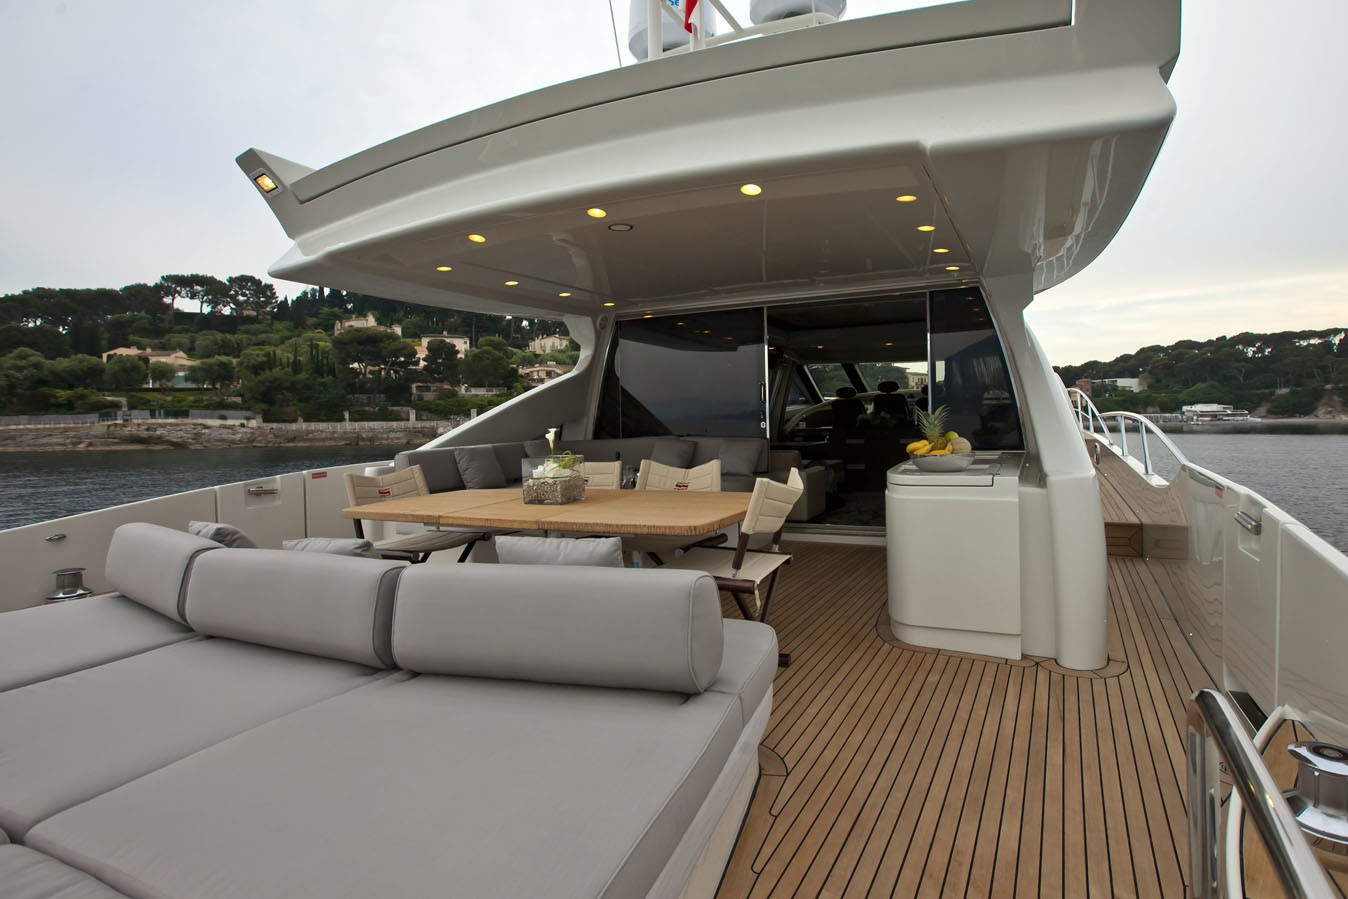 The 26m Yacht NAMI